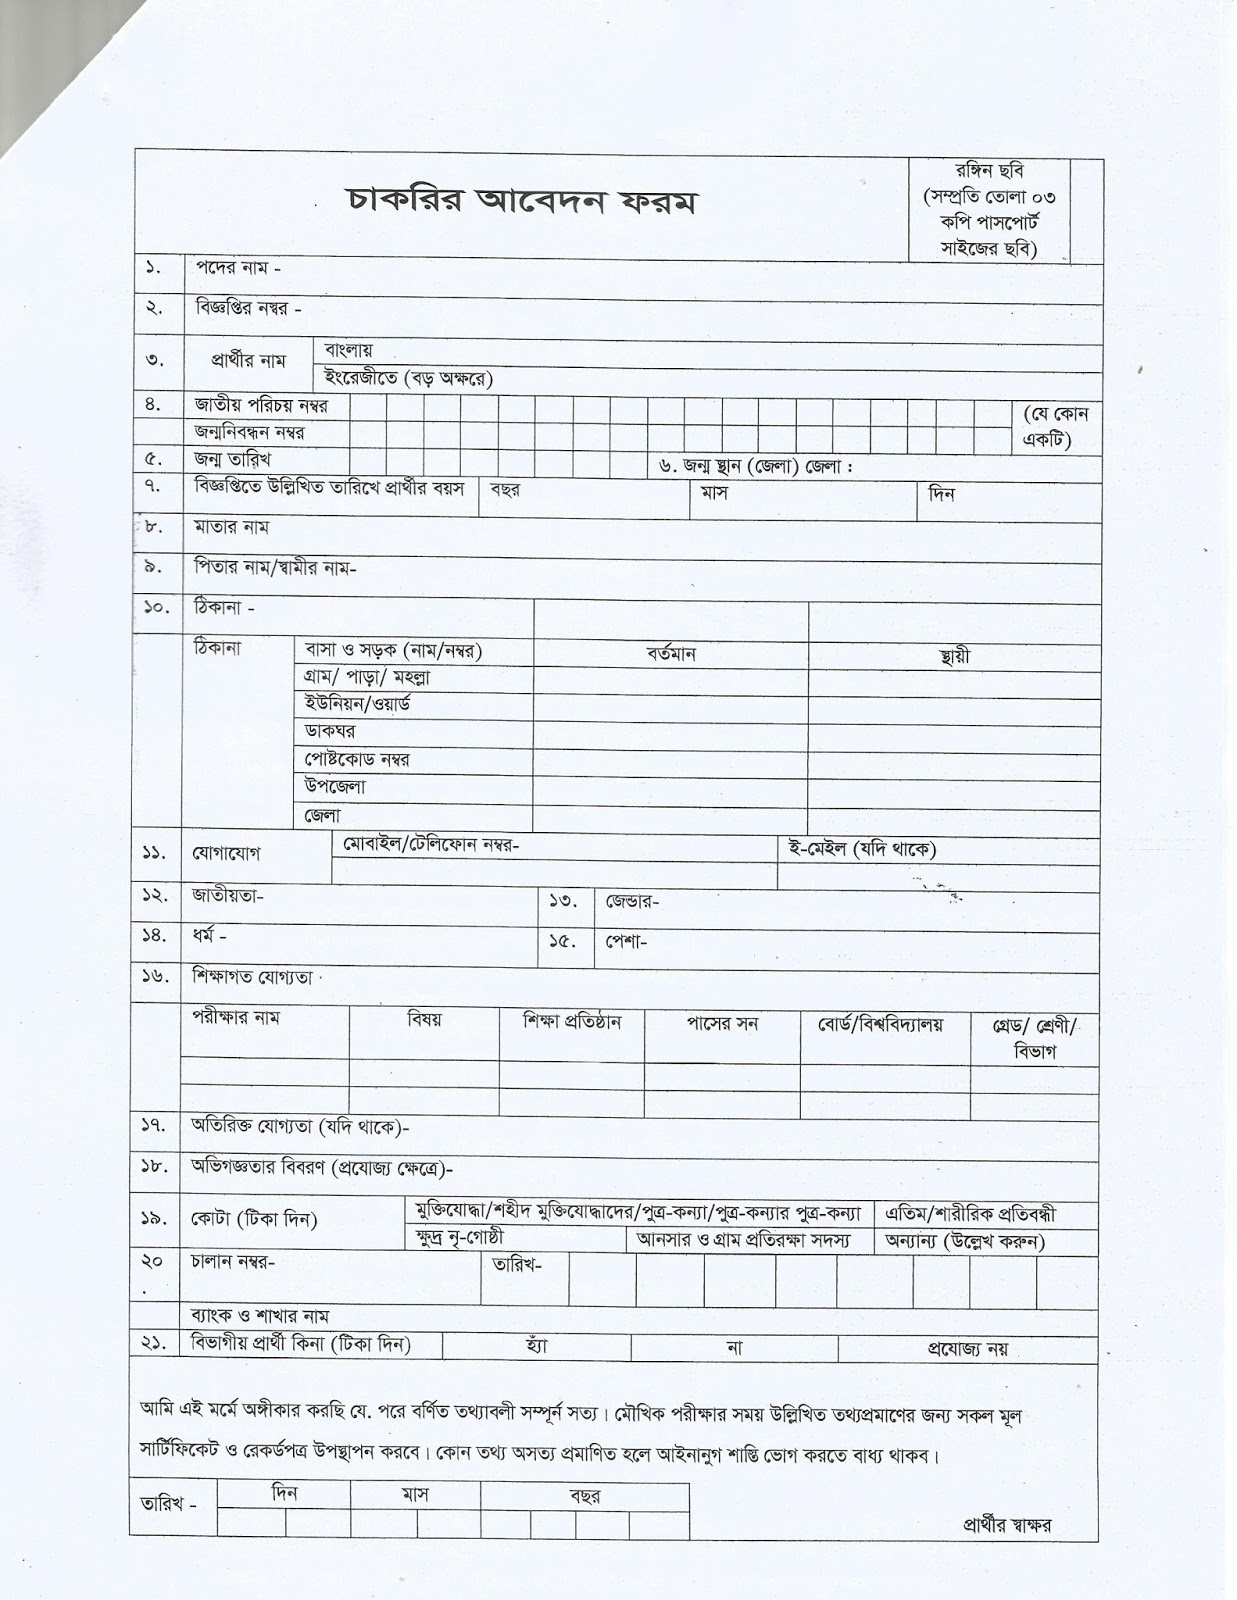 Barisal District Office Job Application Form